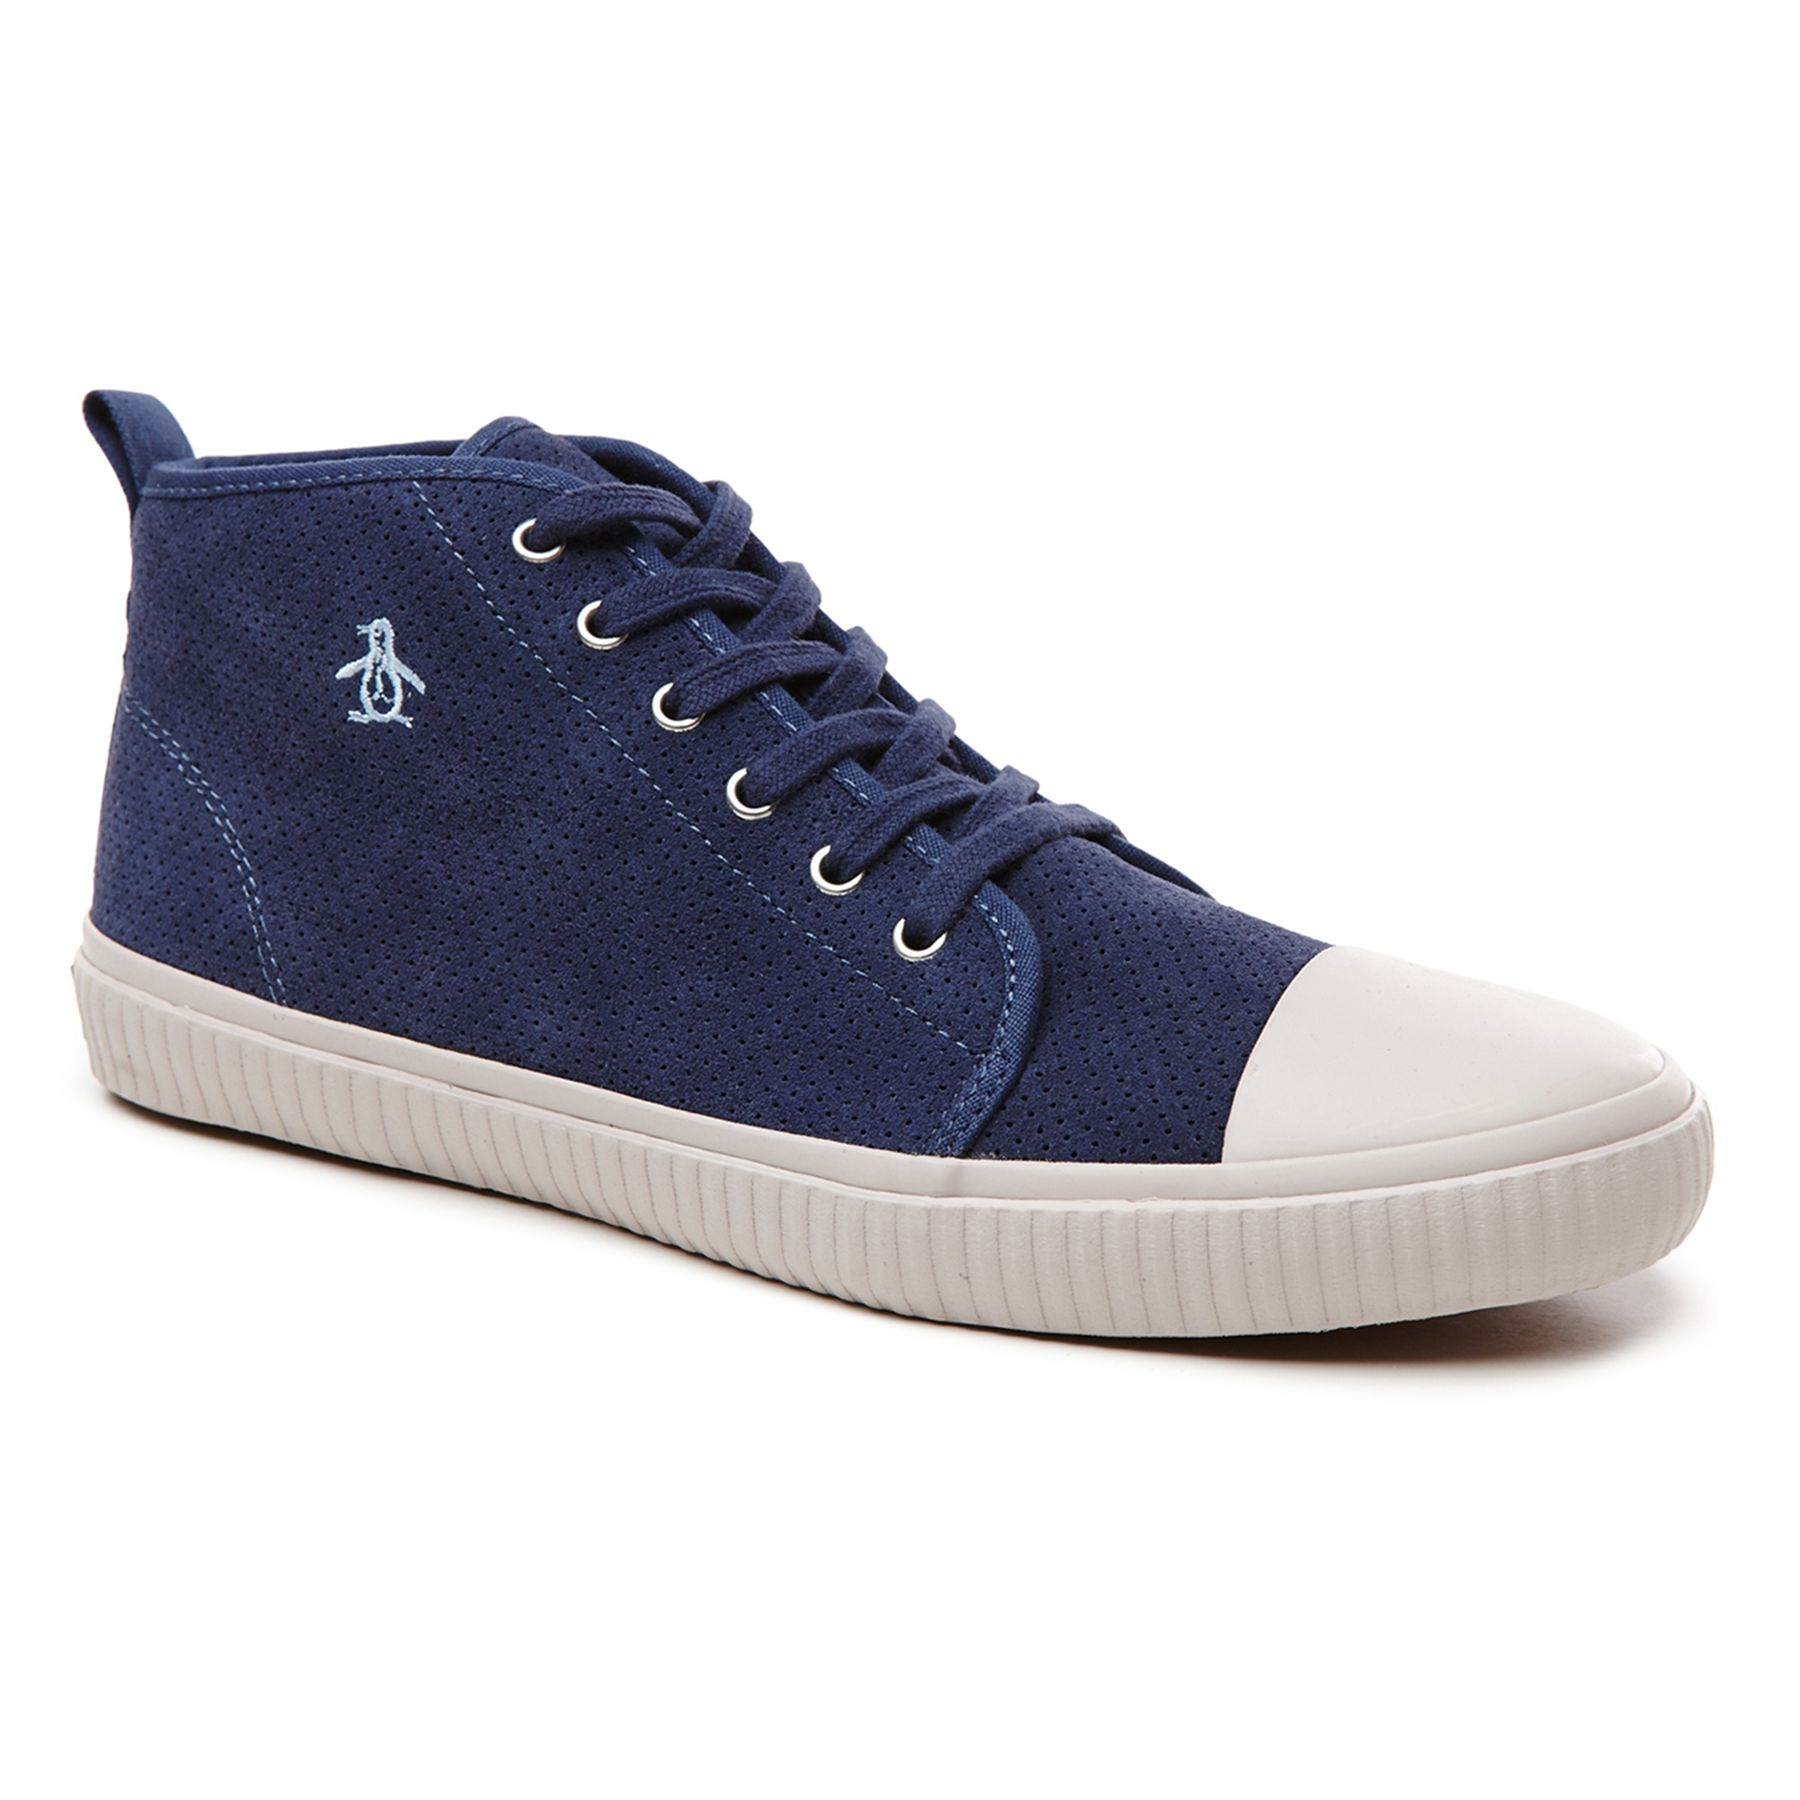 Original Penguin Men's Shoes and Sneakers at MenStyle USA